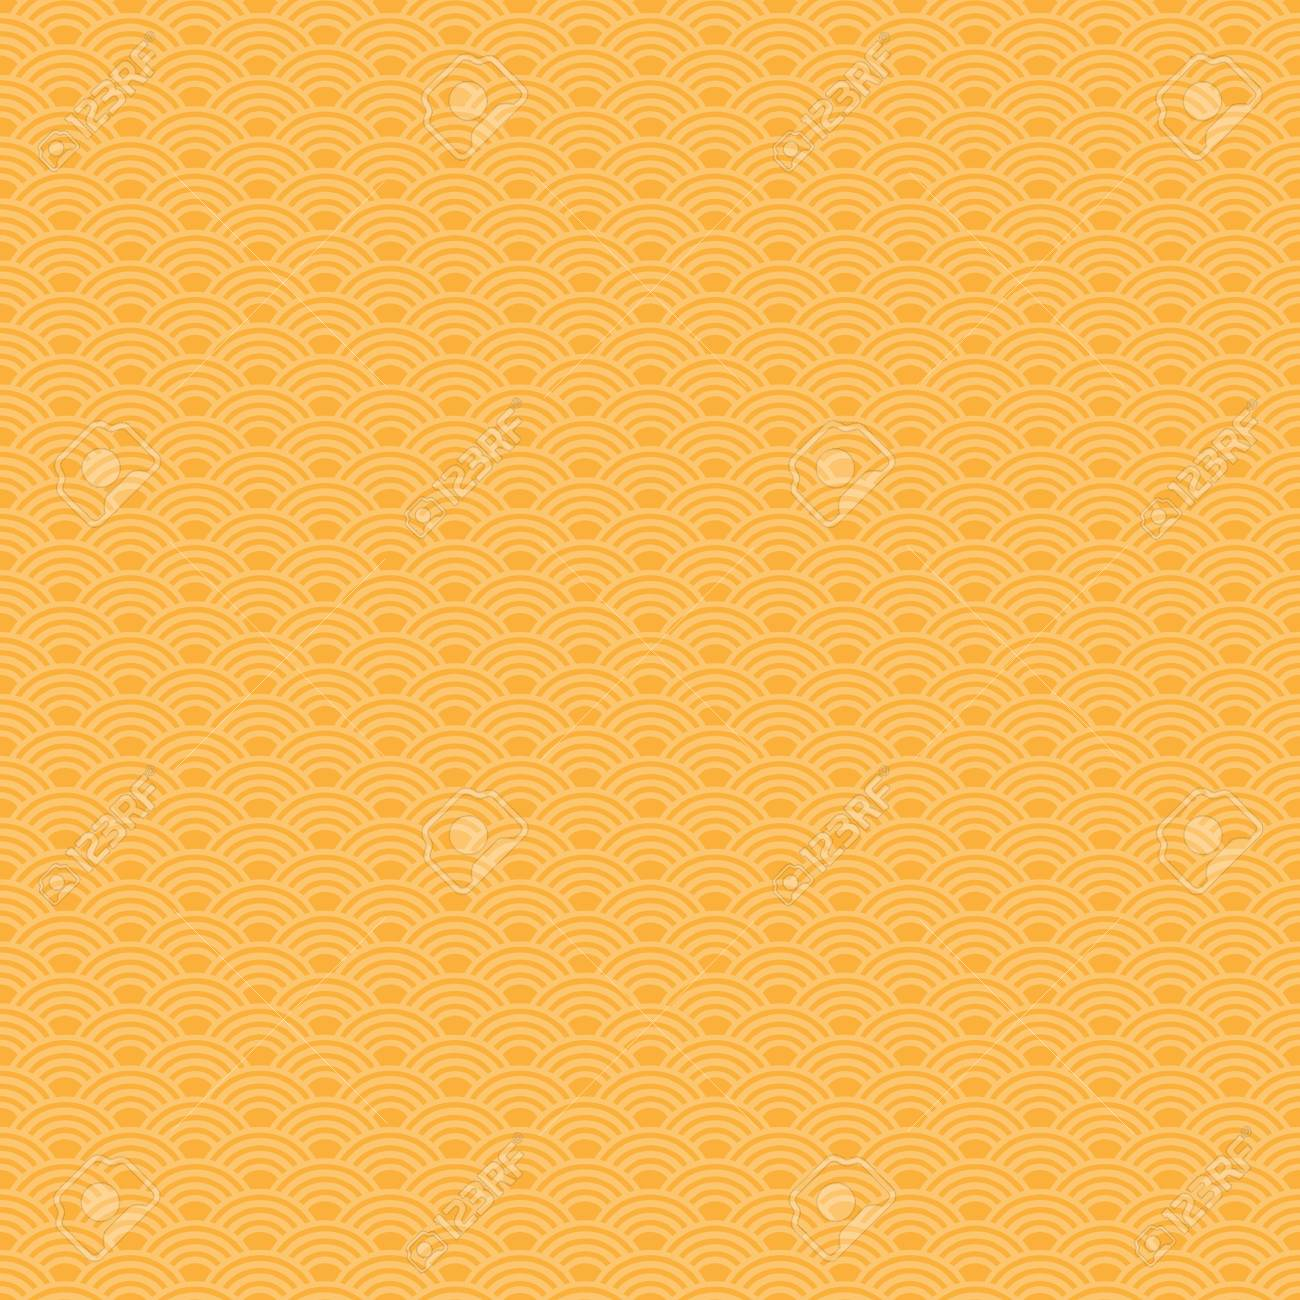 abstract chinese new year background vector design vector illustration of chinese yellow or gold gradient